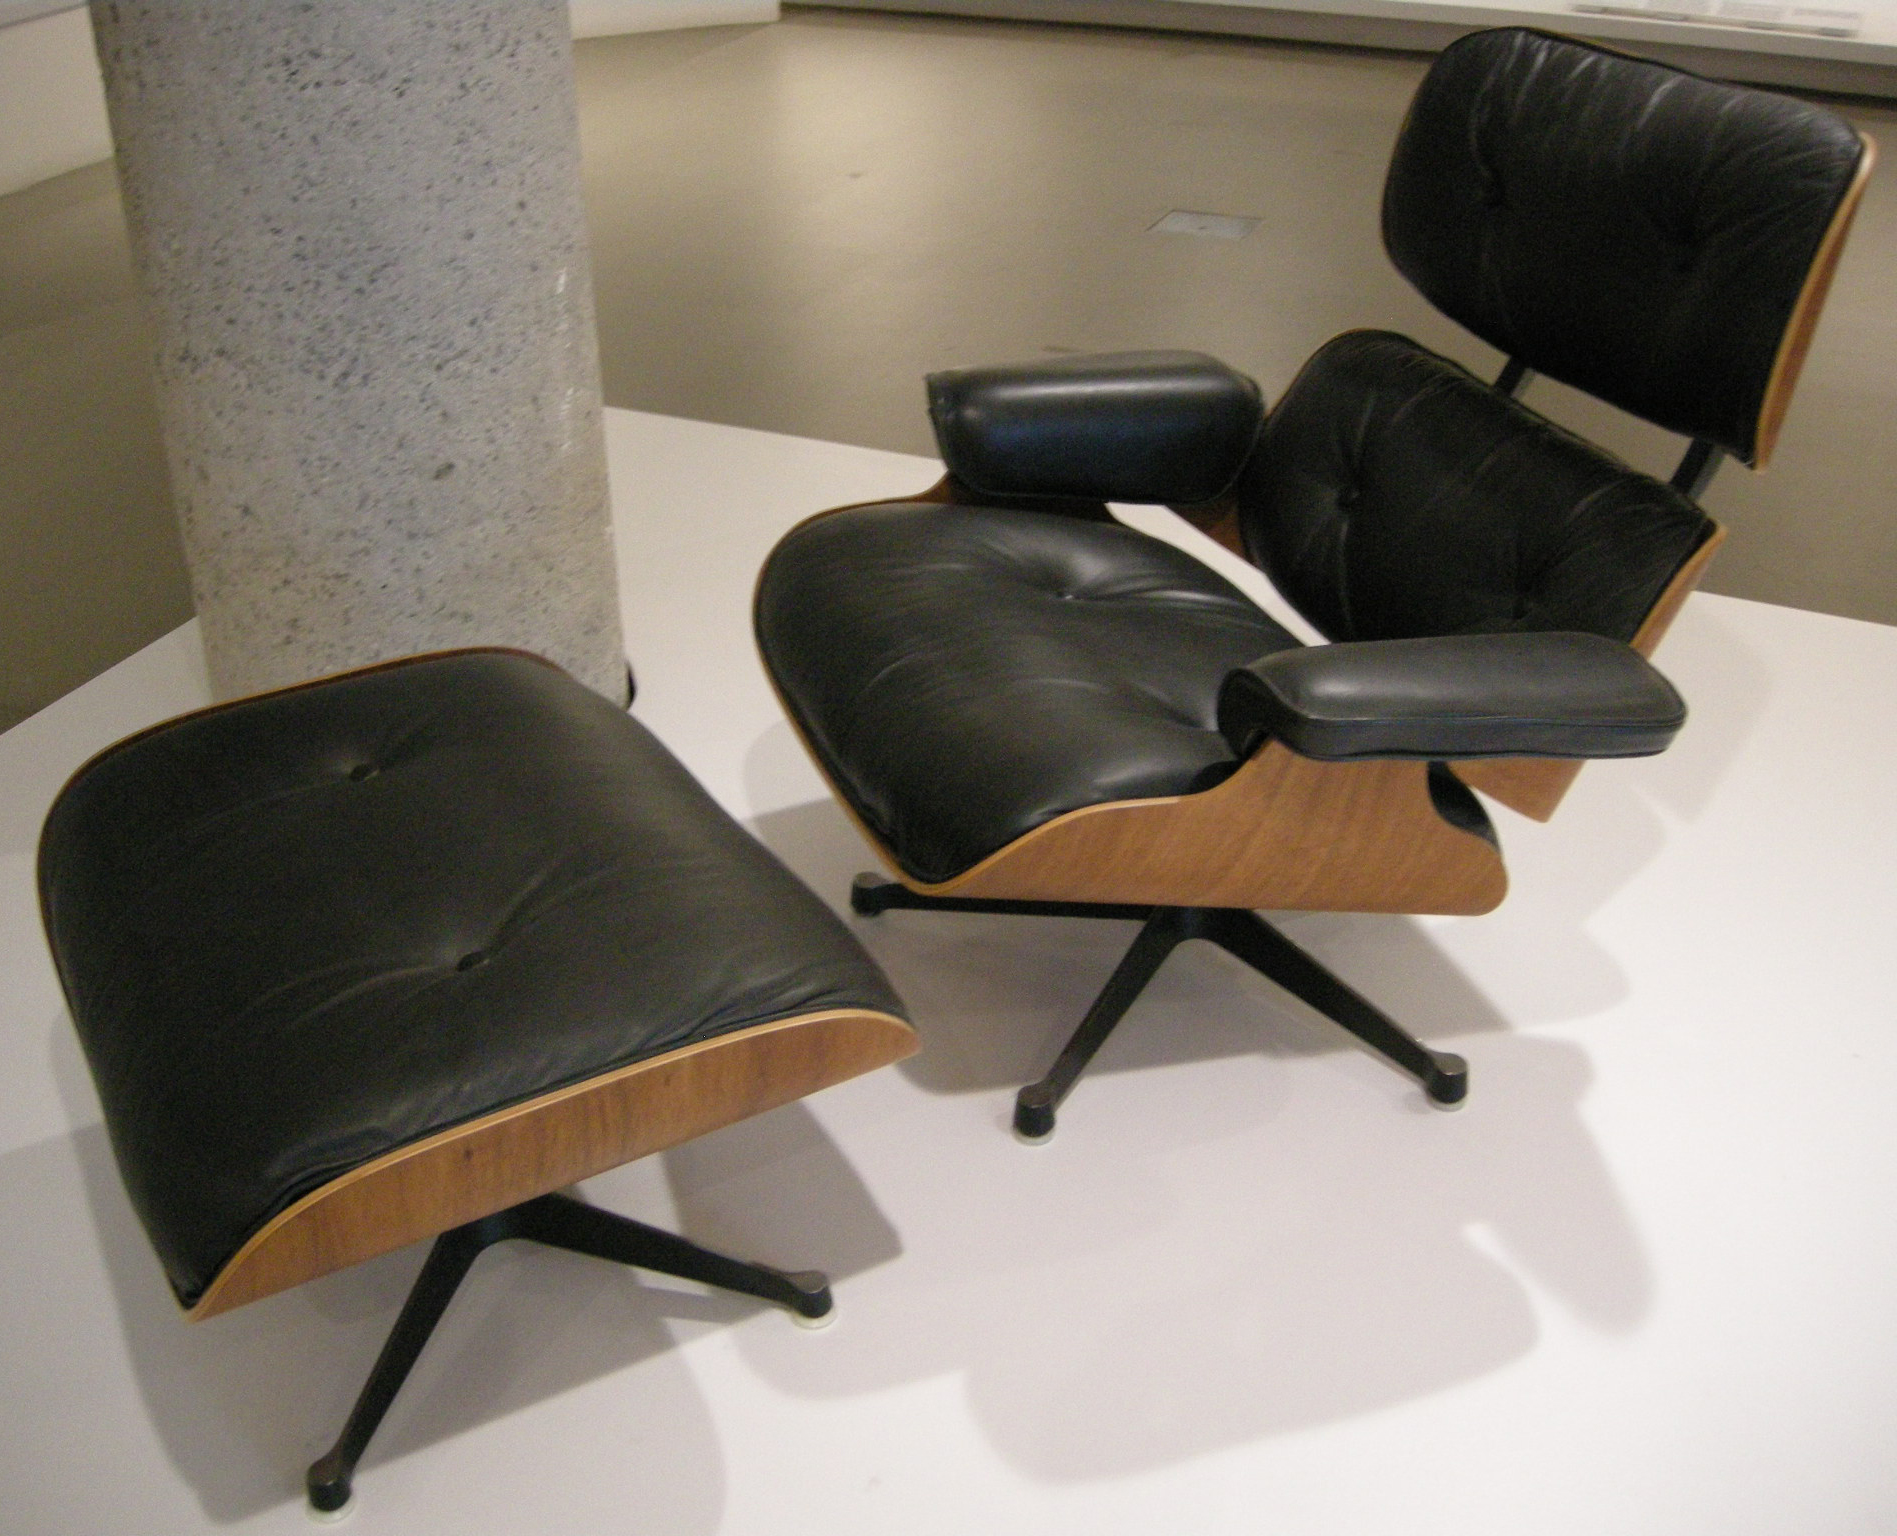 Poltrona Charles Eames Originale.File Ngv Design Charles Eames And Herman Miller Lounge